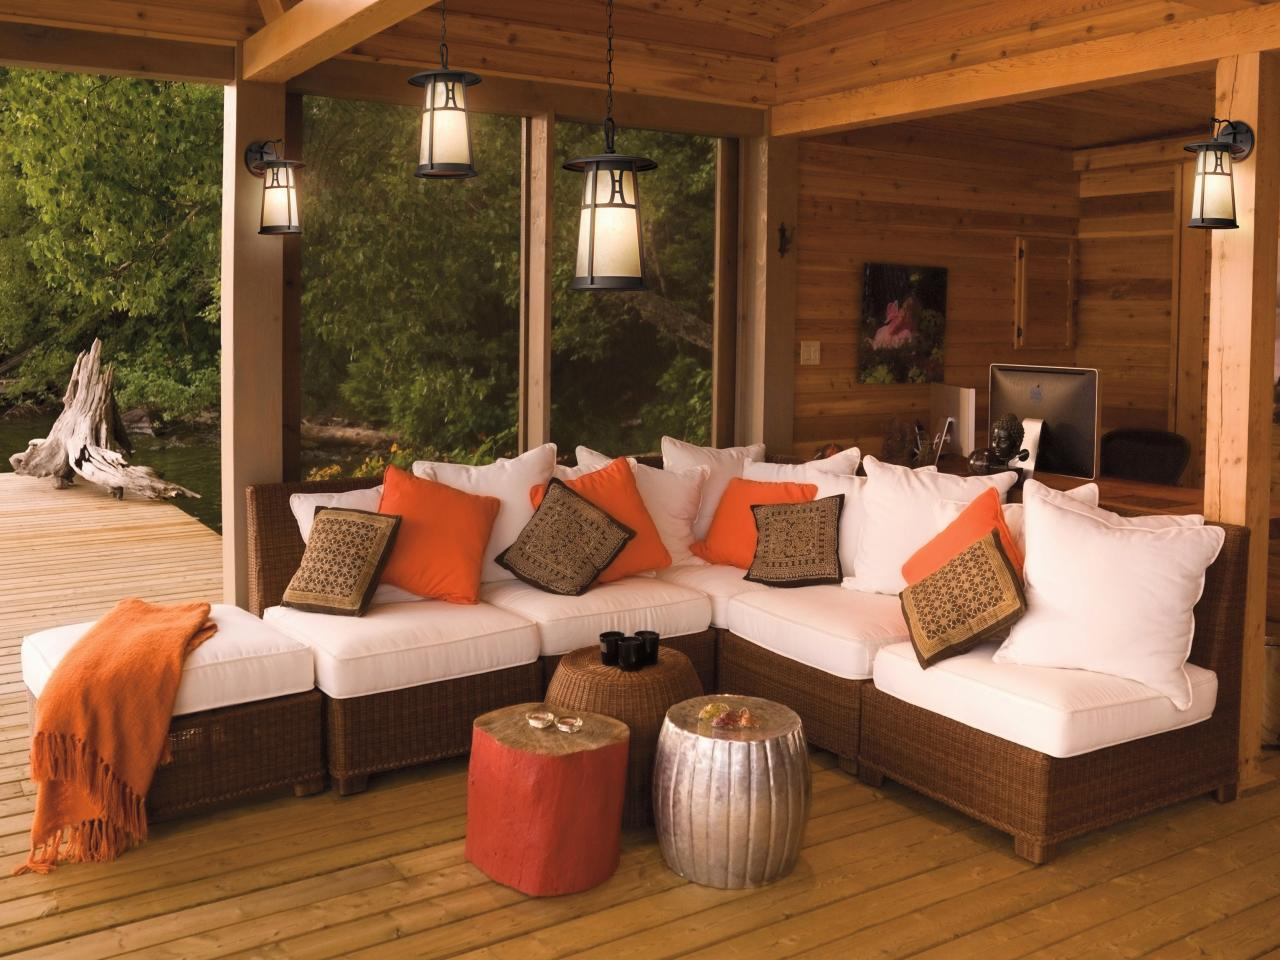 Outdoor Rooms Add Livable Space | HGTV on Garden Living Space id=48403